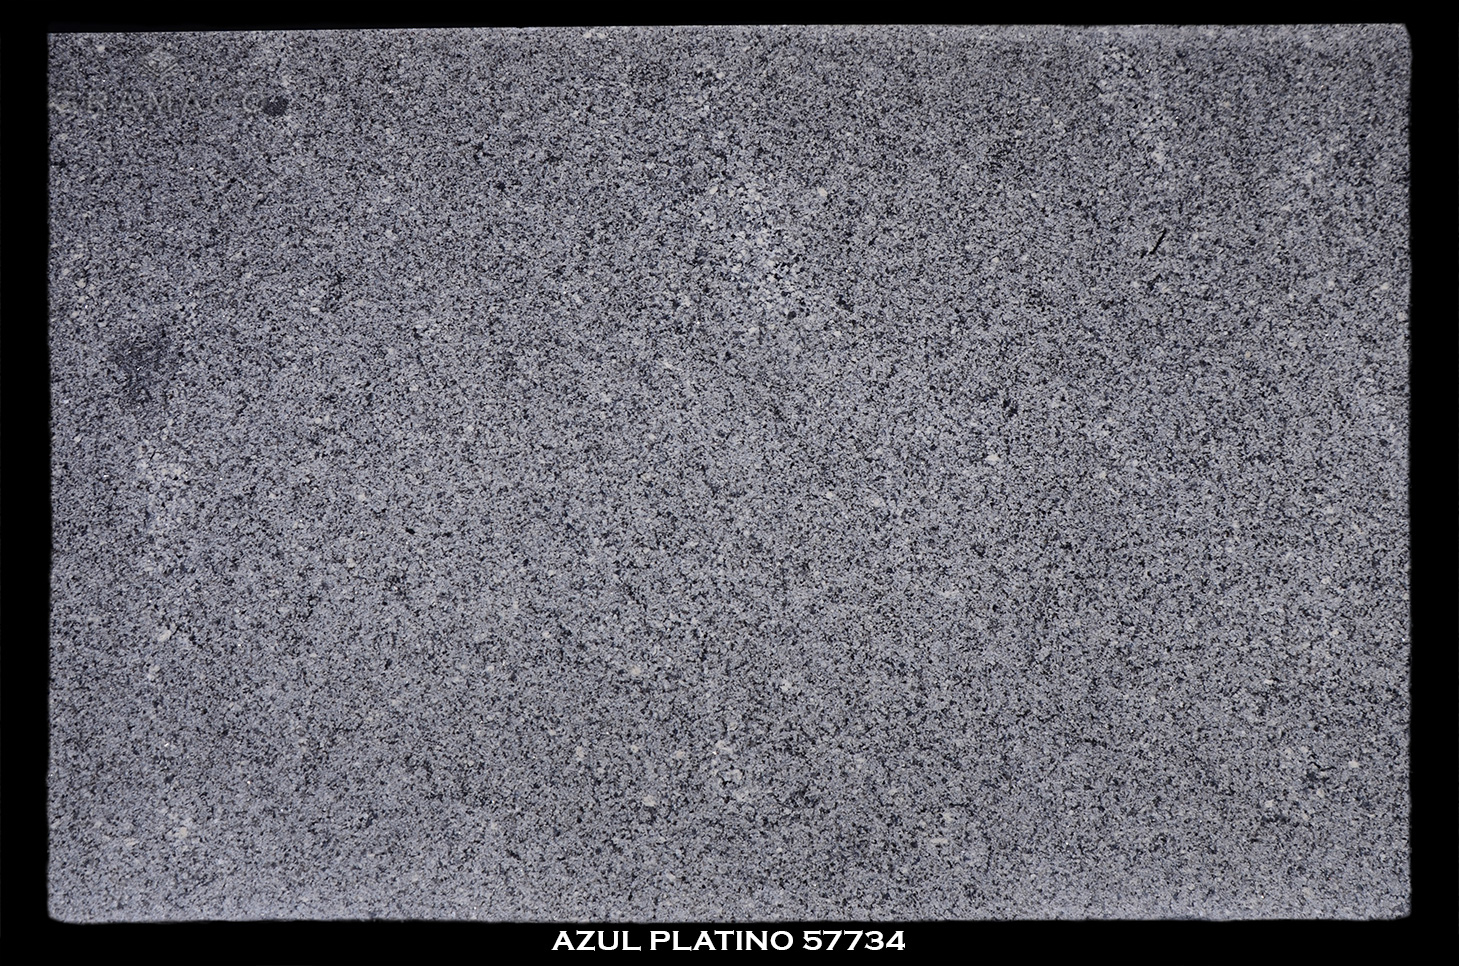 AZUL-PLATINO-57734---FULL-SLAB-BLACK